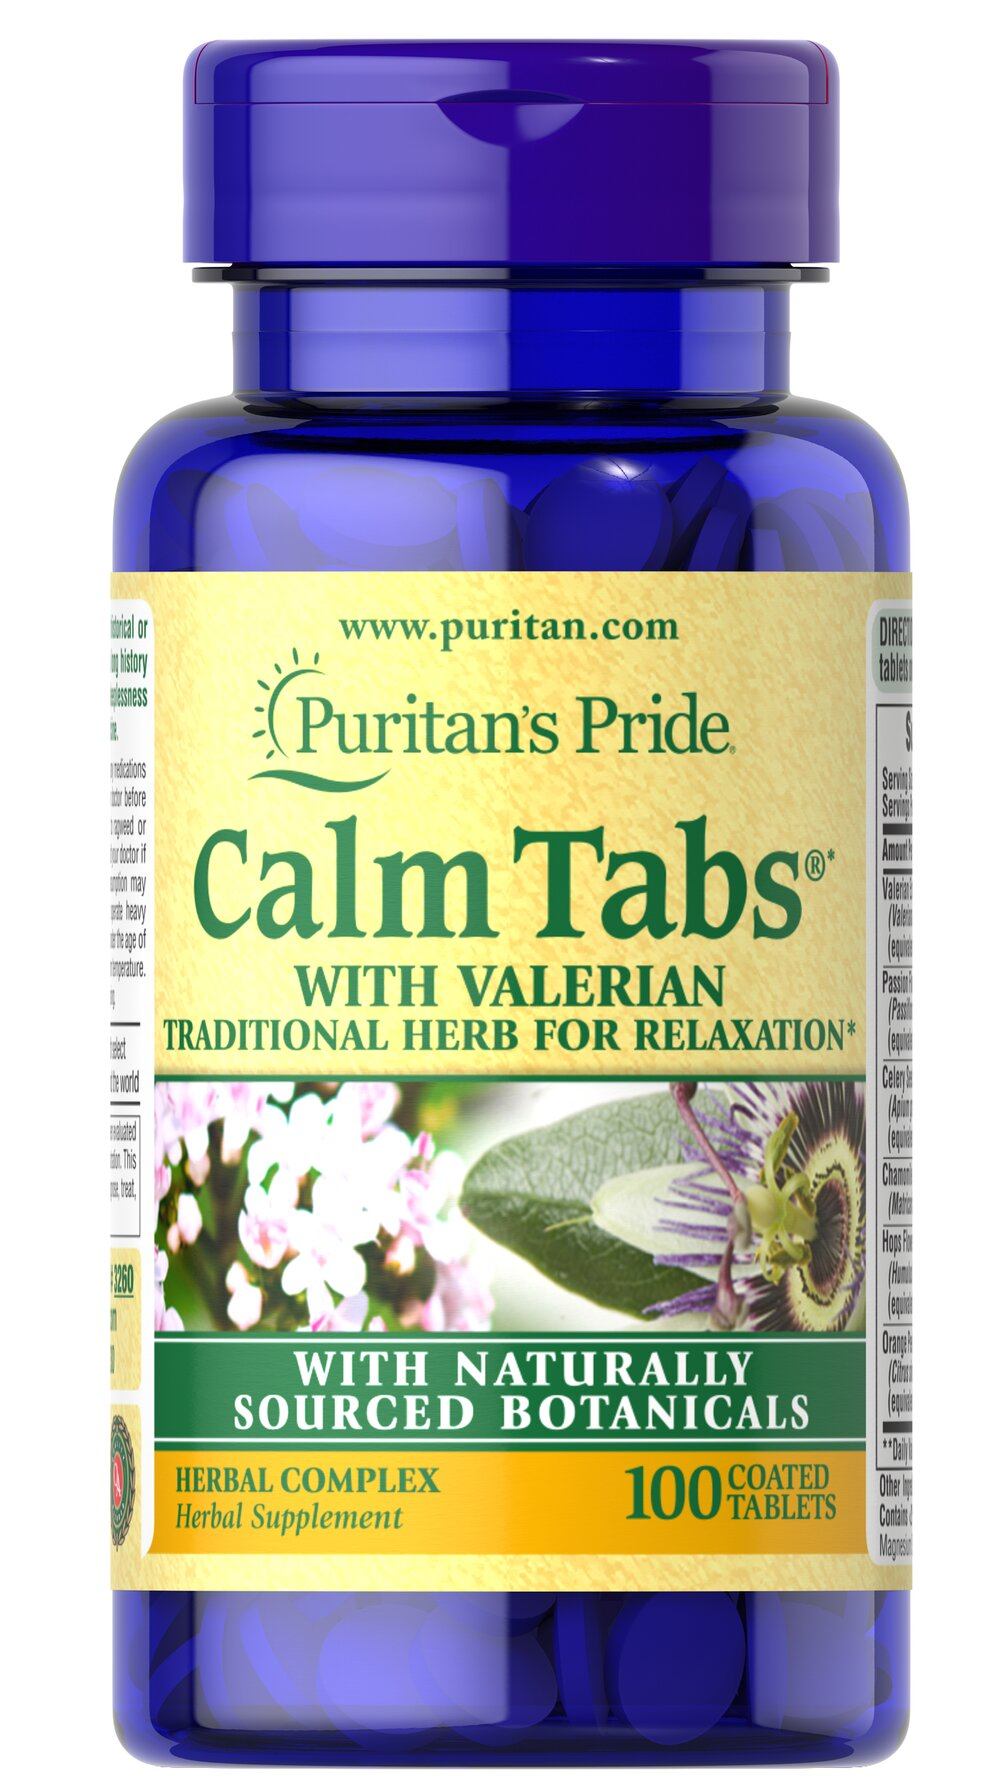 Calm Tabs® <p>Try Calm Tabs® for a relaxing way to wind down from a hectic day. With the stresses of everyday life, it is nice to come home to a relaxing, tranquil evening. Calm Tabs® is a unique blend of more than five herbal ingredients, including Valerian and Hops, that can complement a restful night, especially after a long, tension-filled day.** Use before bedtime or when you want an herbal supplement during relaxation.**</p> 100 Tablets  $7.99